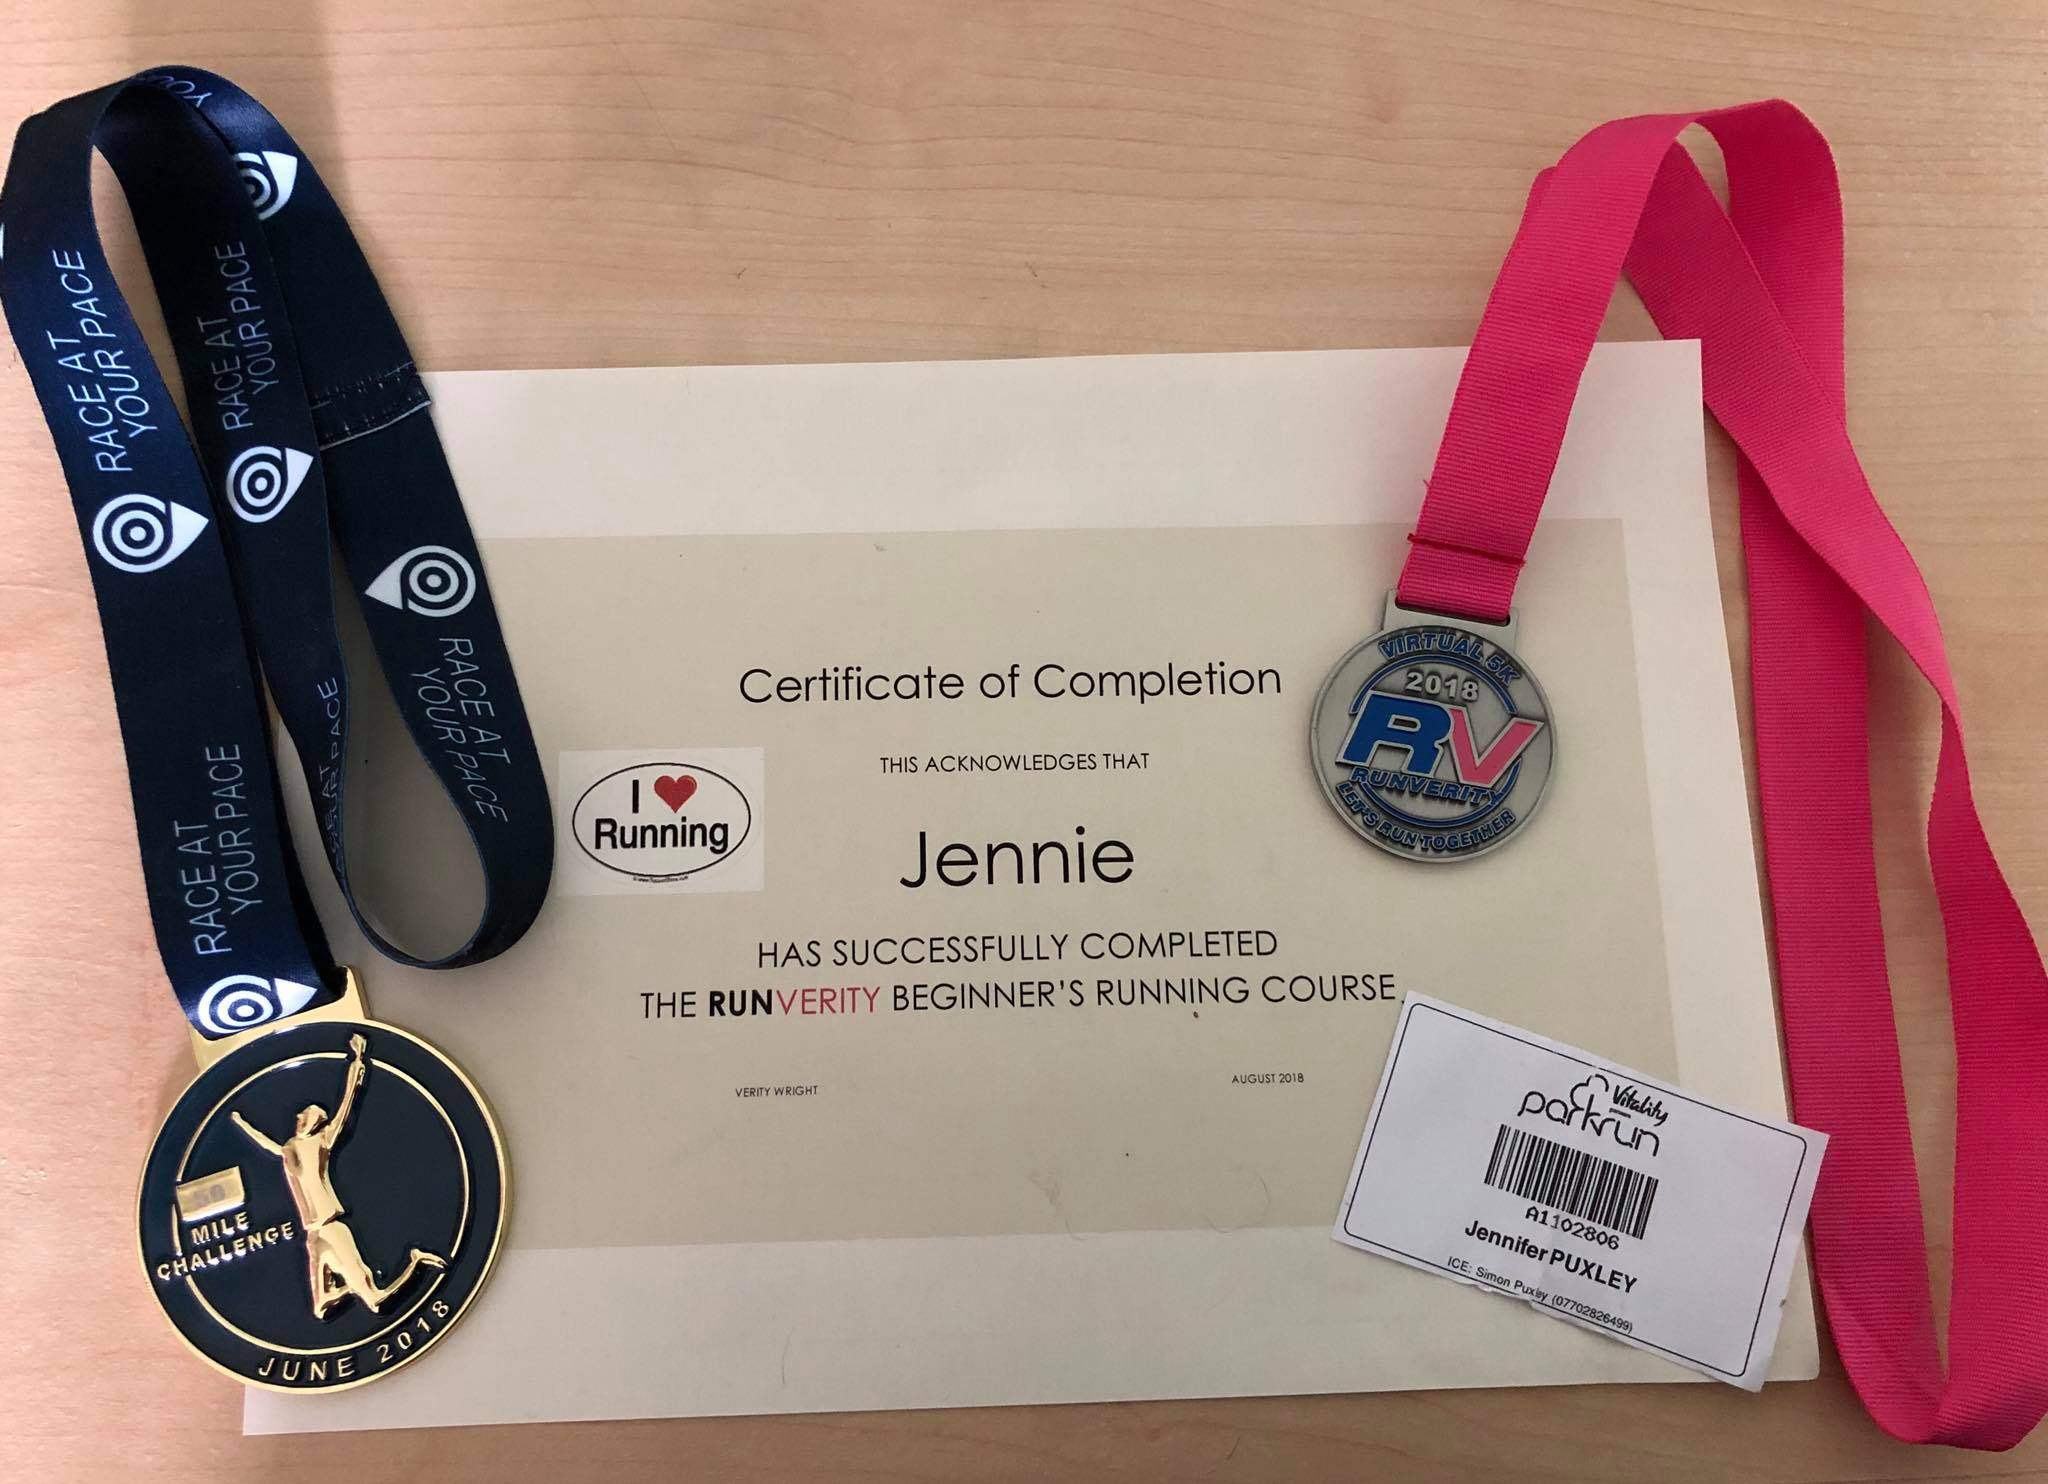 Jenni's certificate and medals